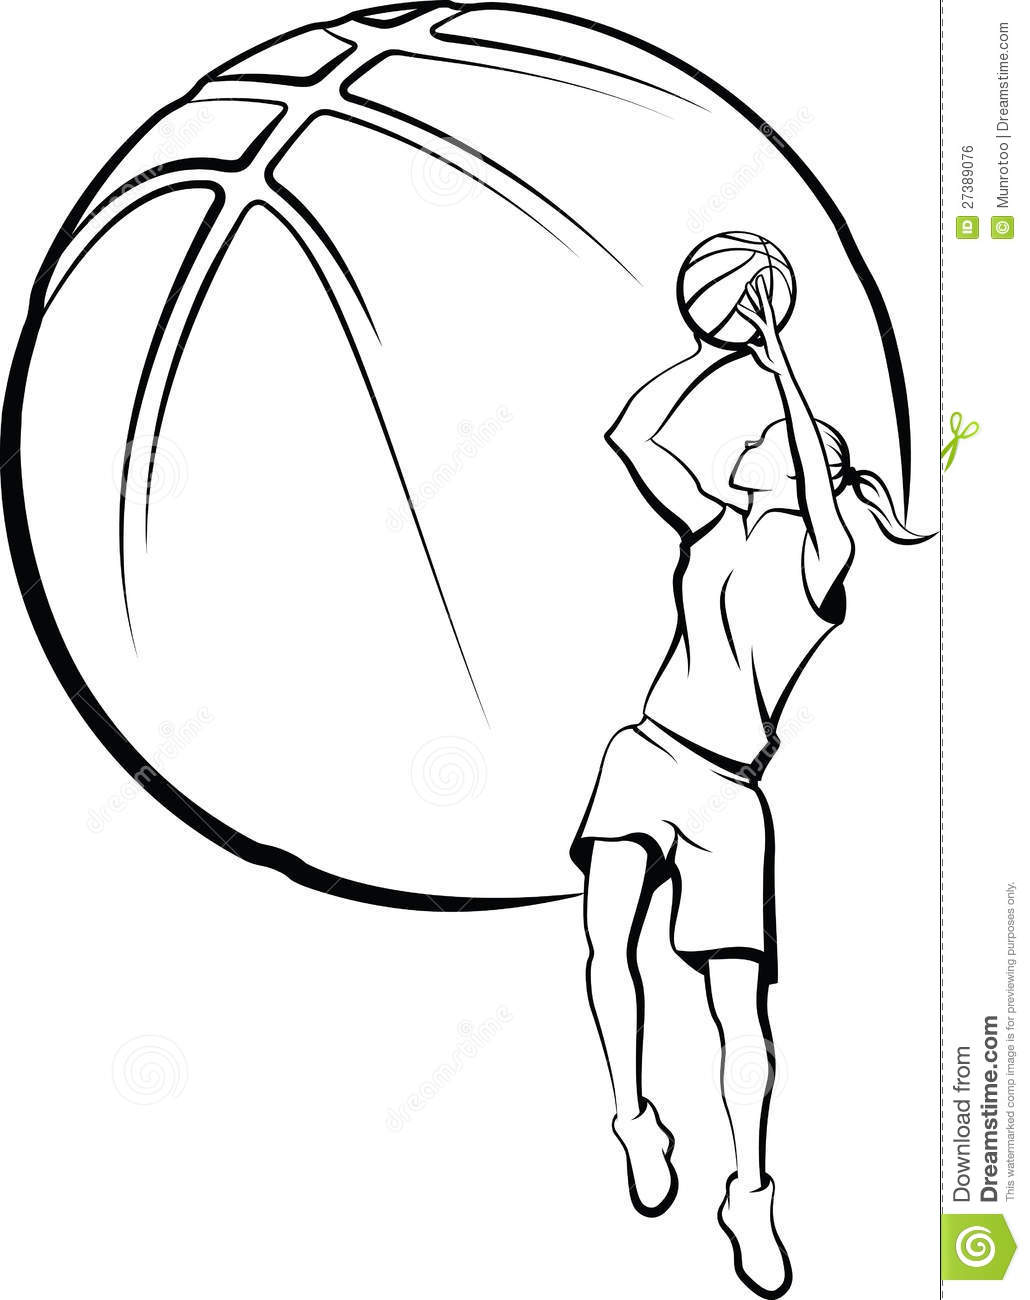 how to draw a girl basketball player